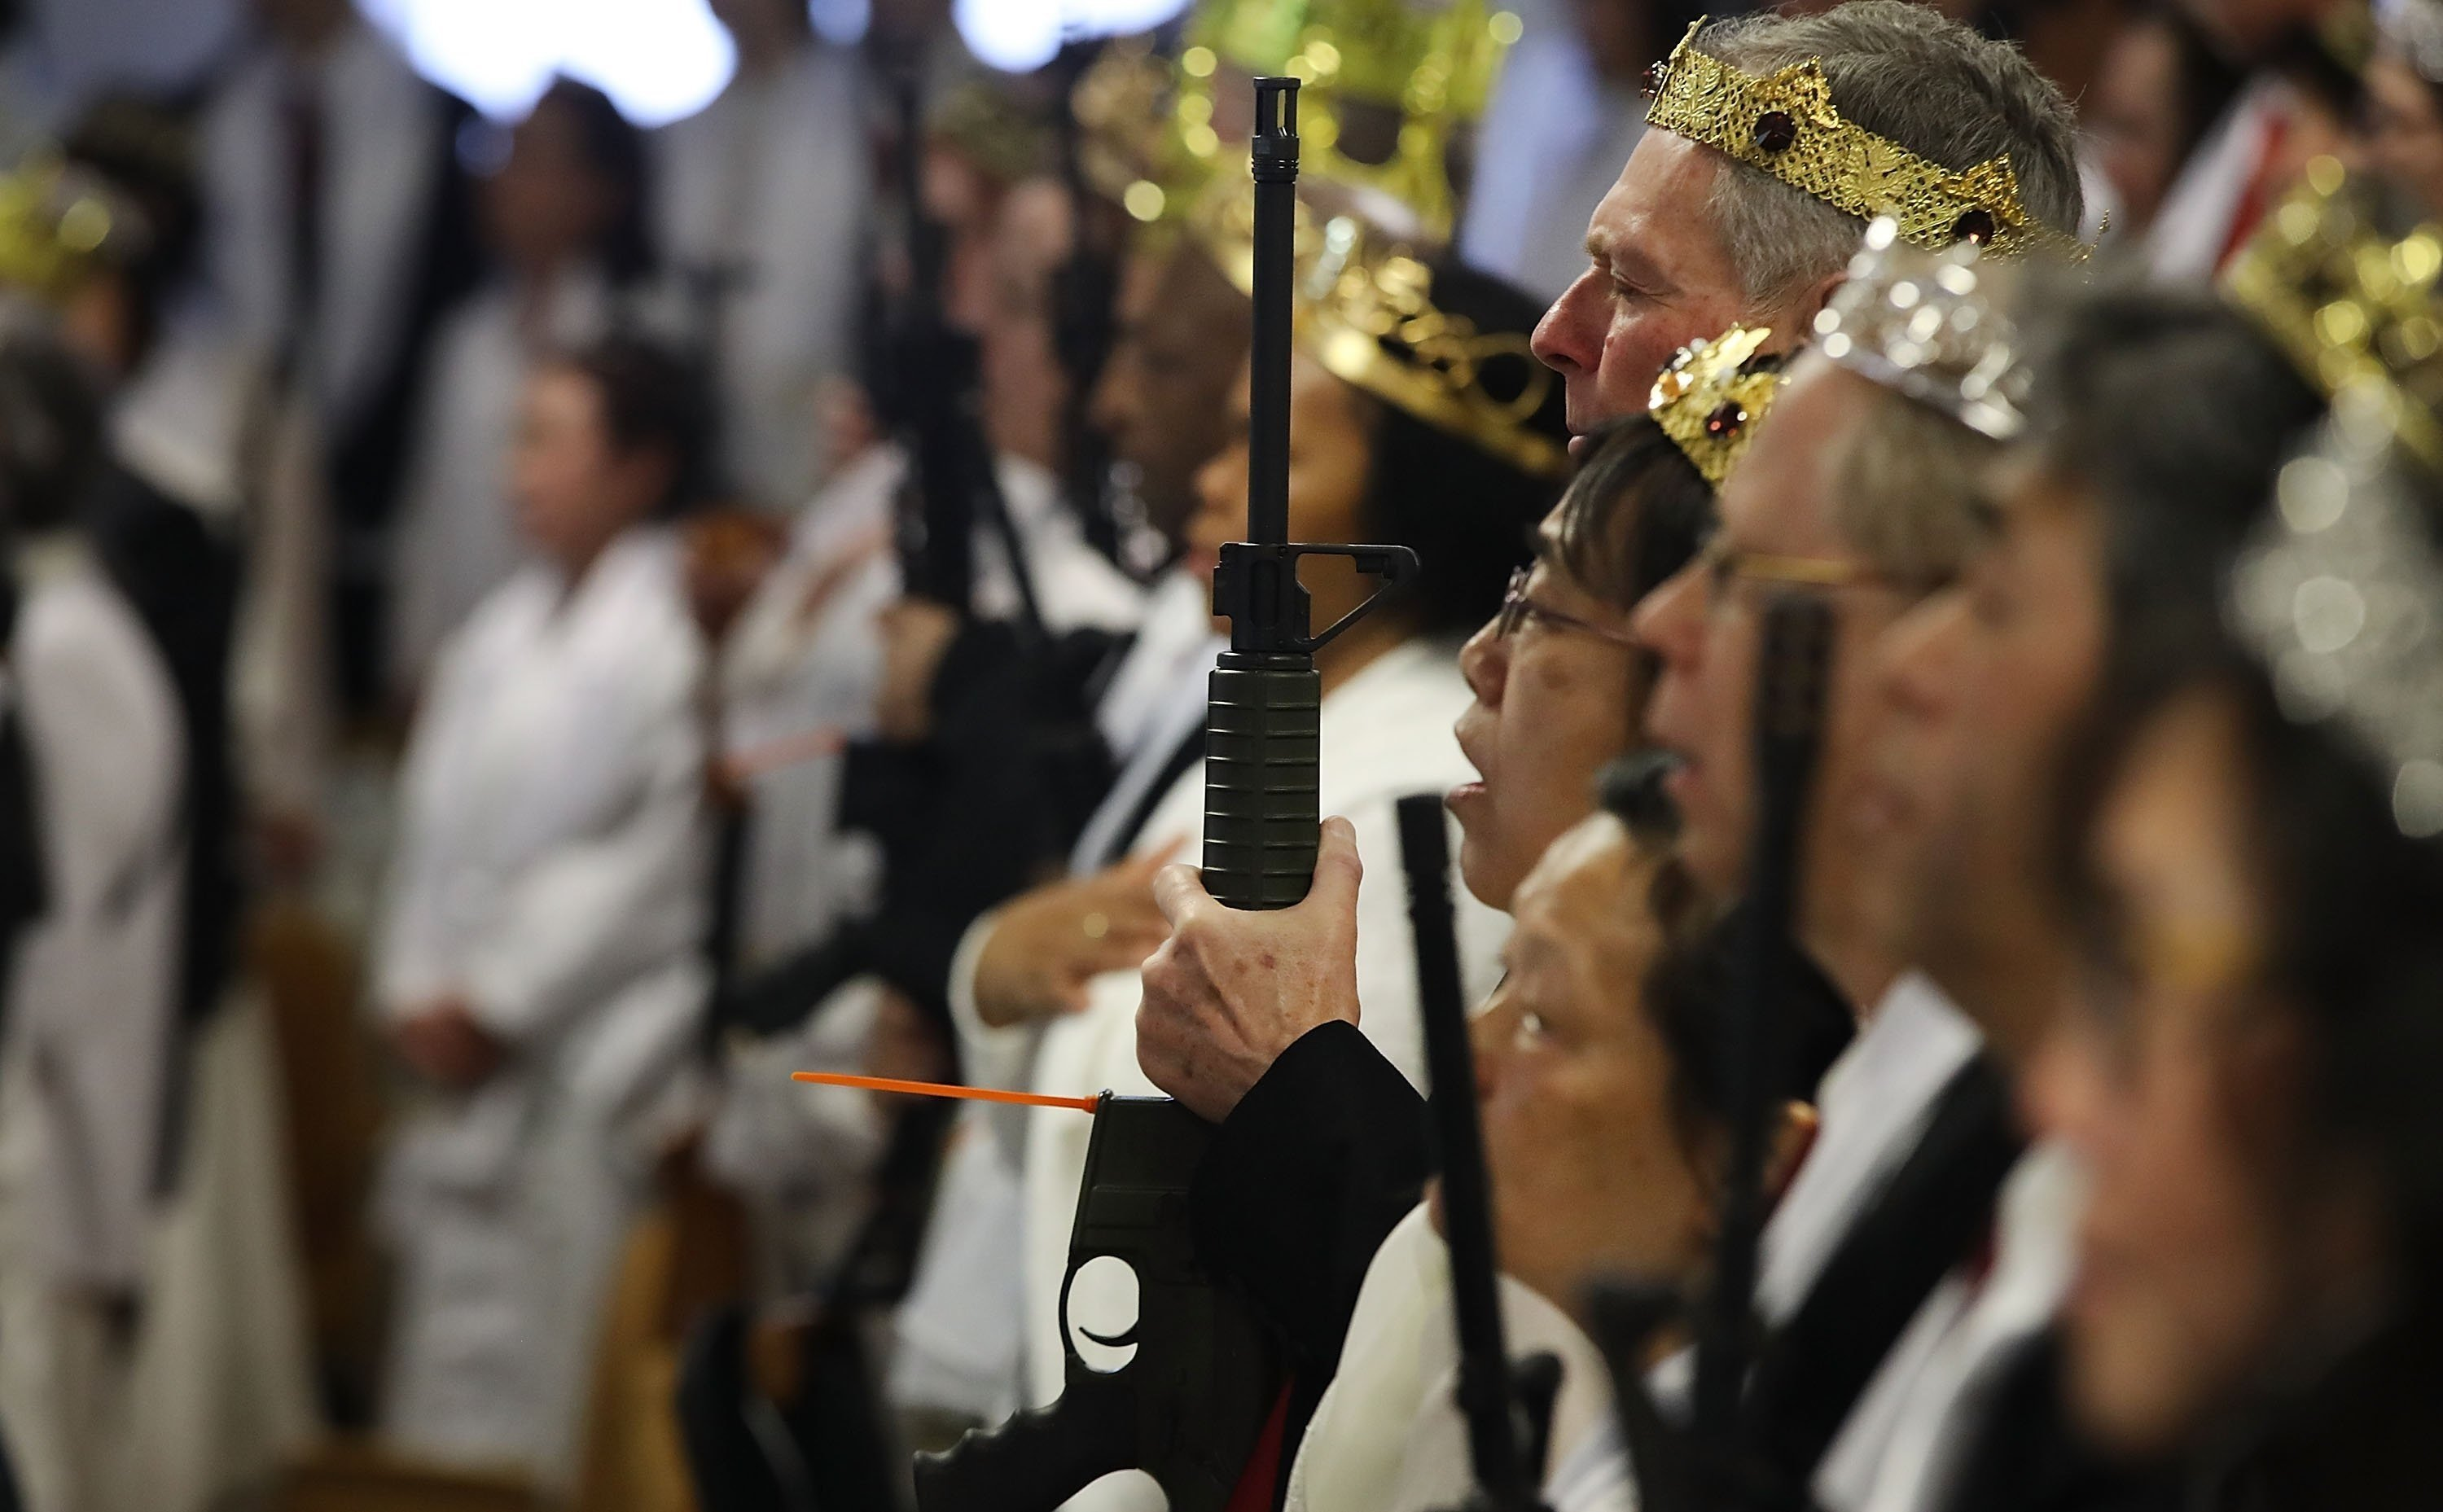 Worshipers clutching AR-15 rifles hold commitment ceremony